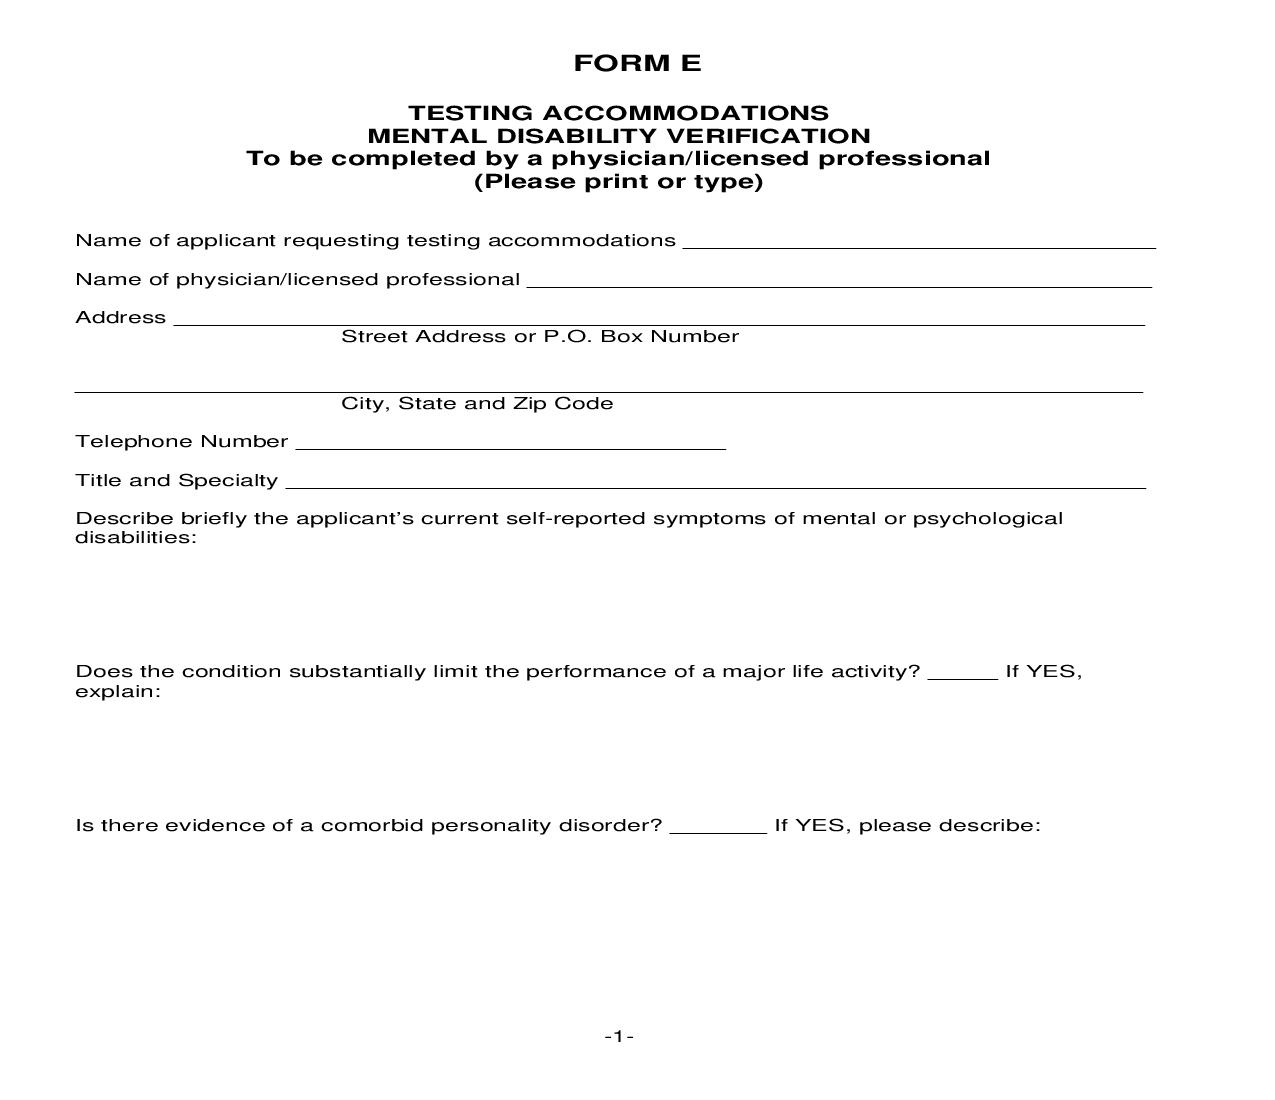 Application For Testing Accommodations - Form E | Pdf Fpdf Doc Docx | Iowa